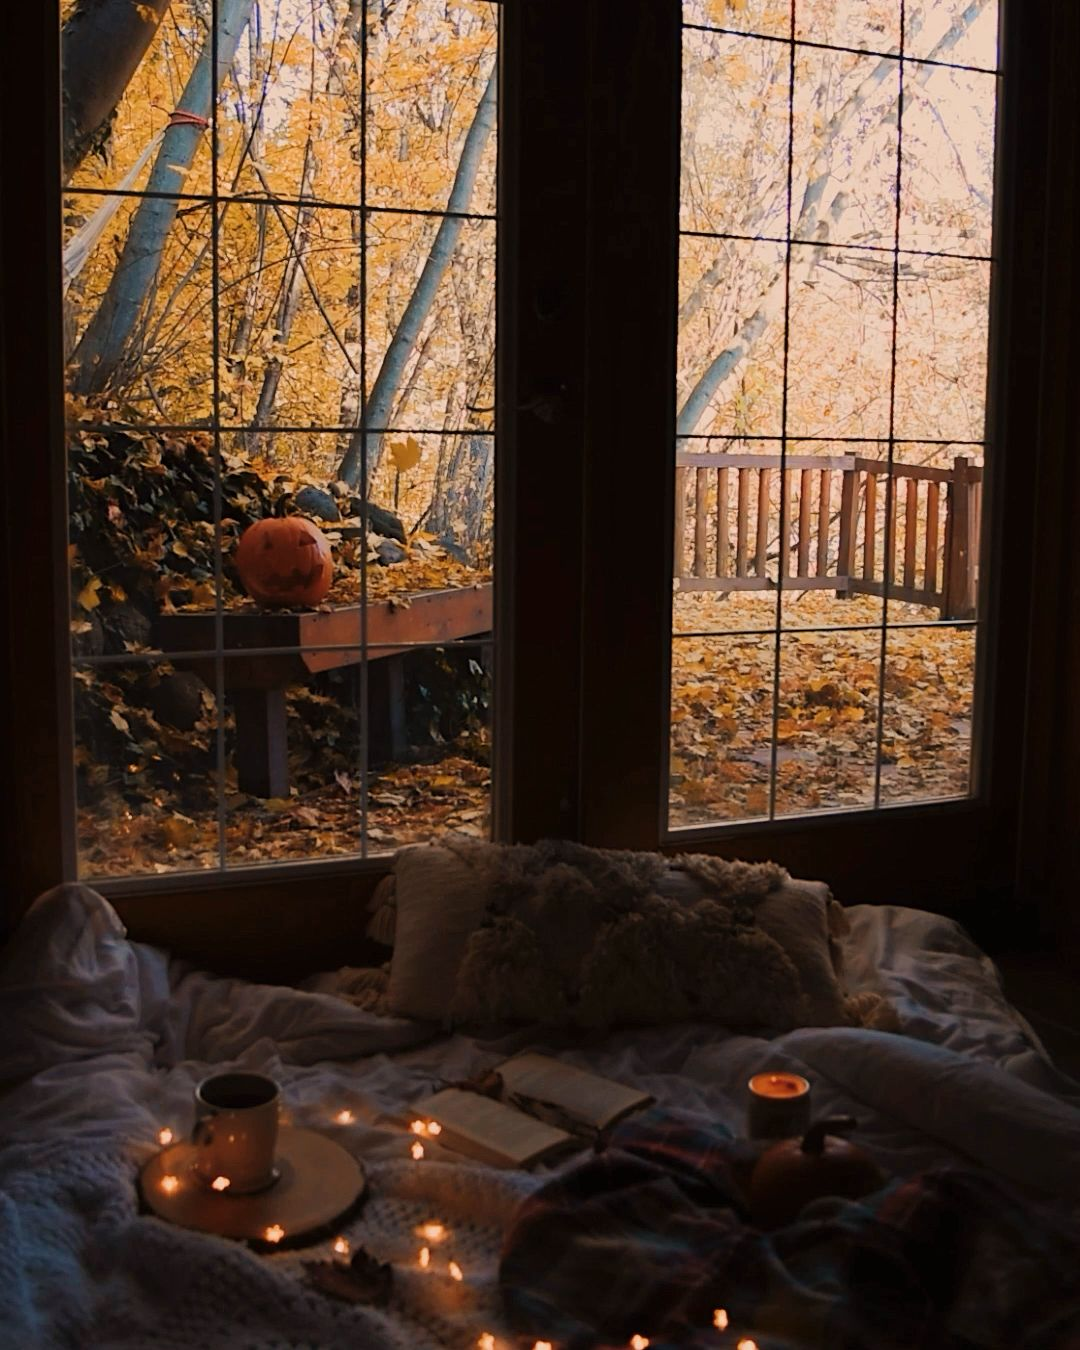 Fall Autumn Aesthetic Leaves October Cozy Candle